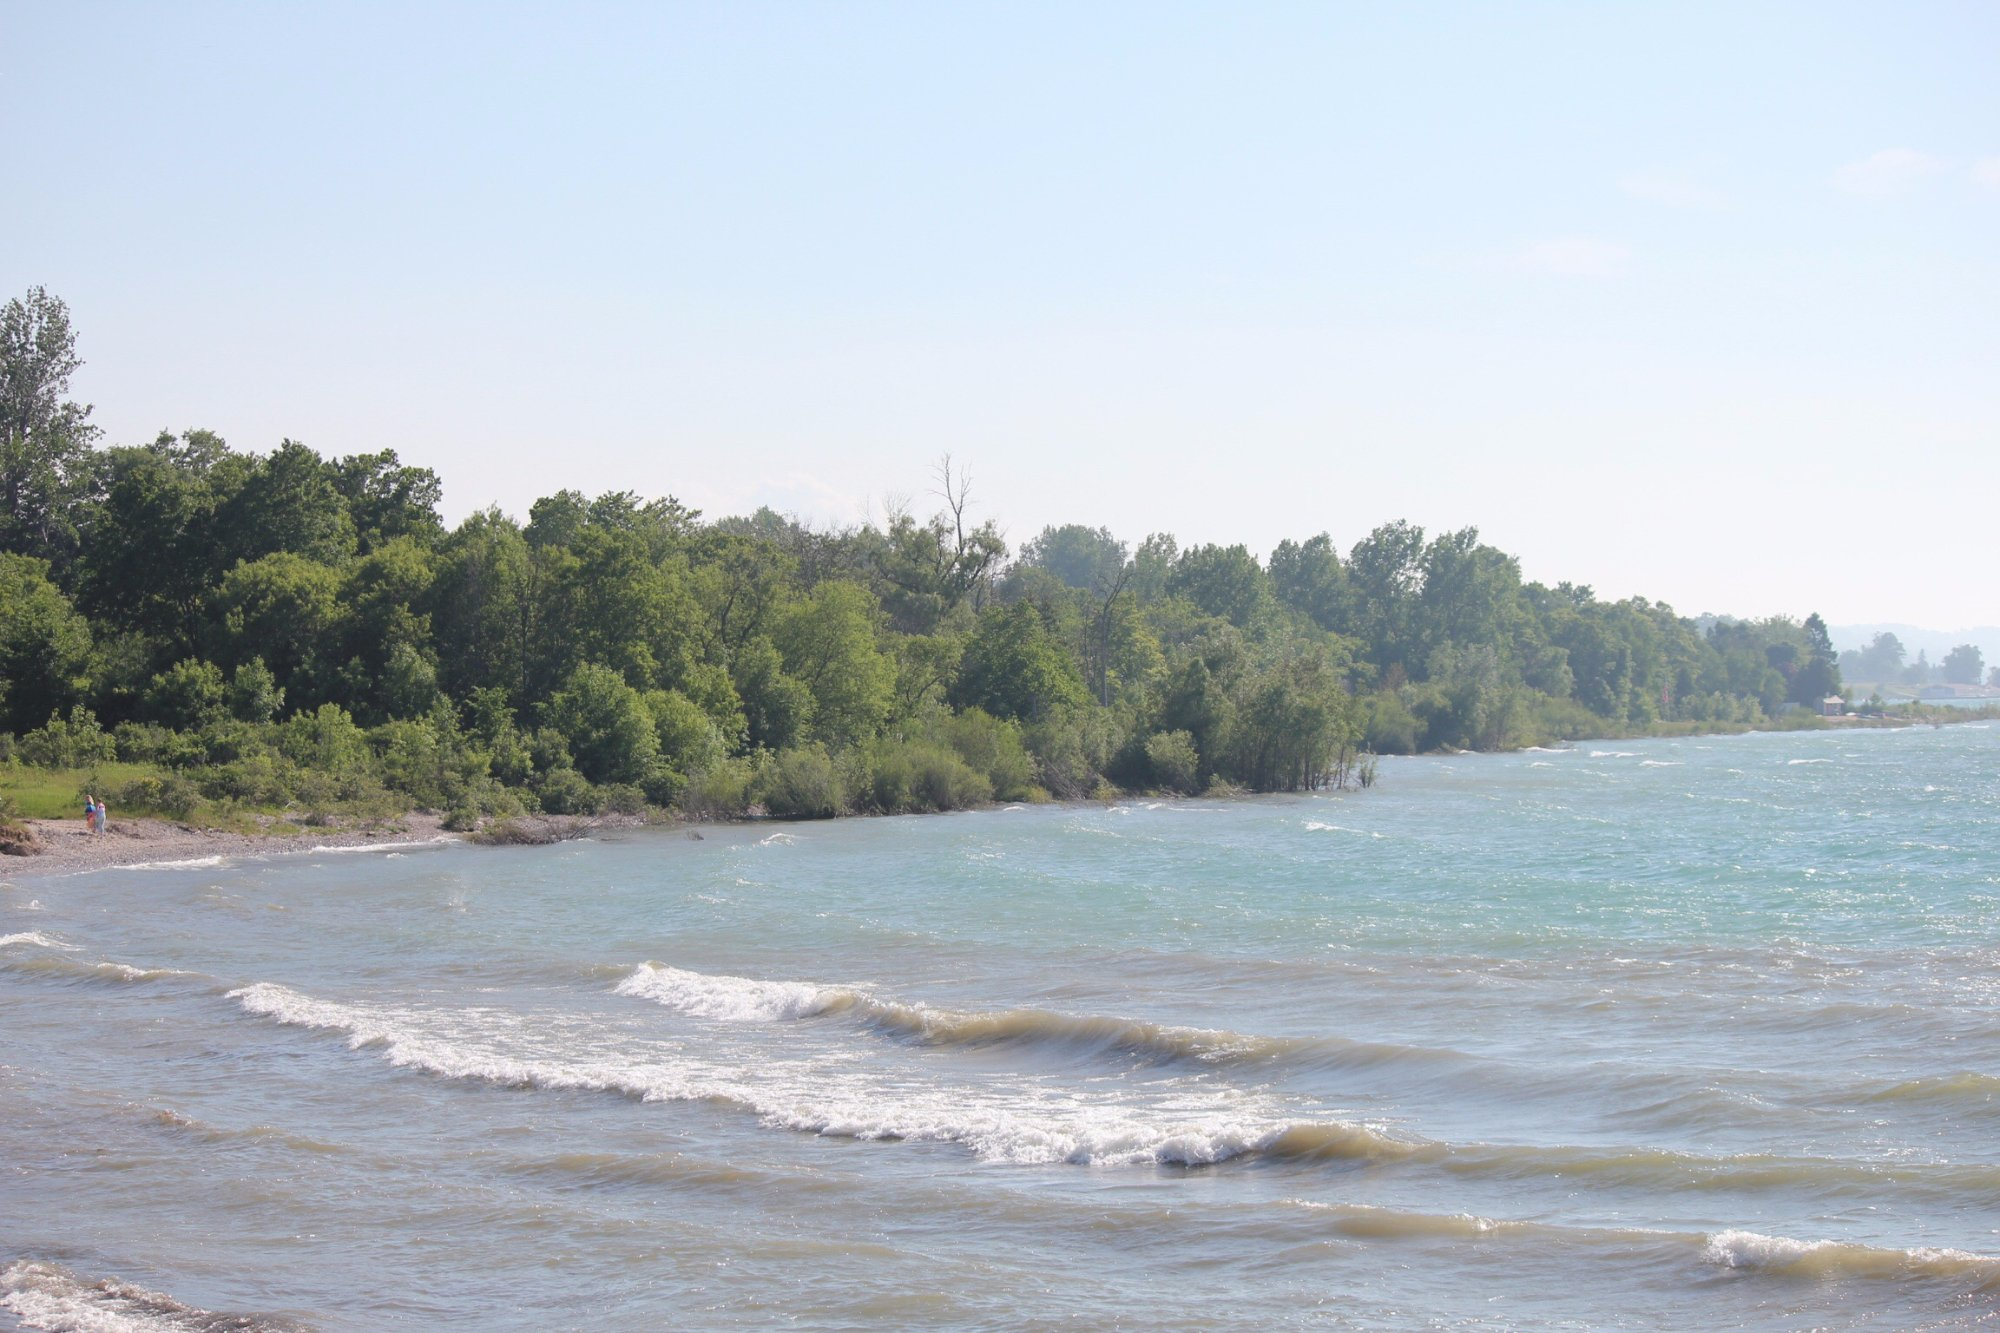 The Lake Michigan shoreline